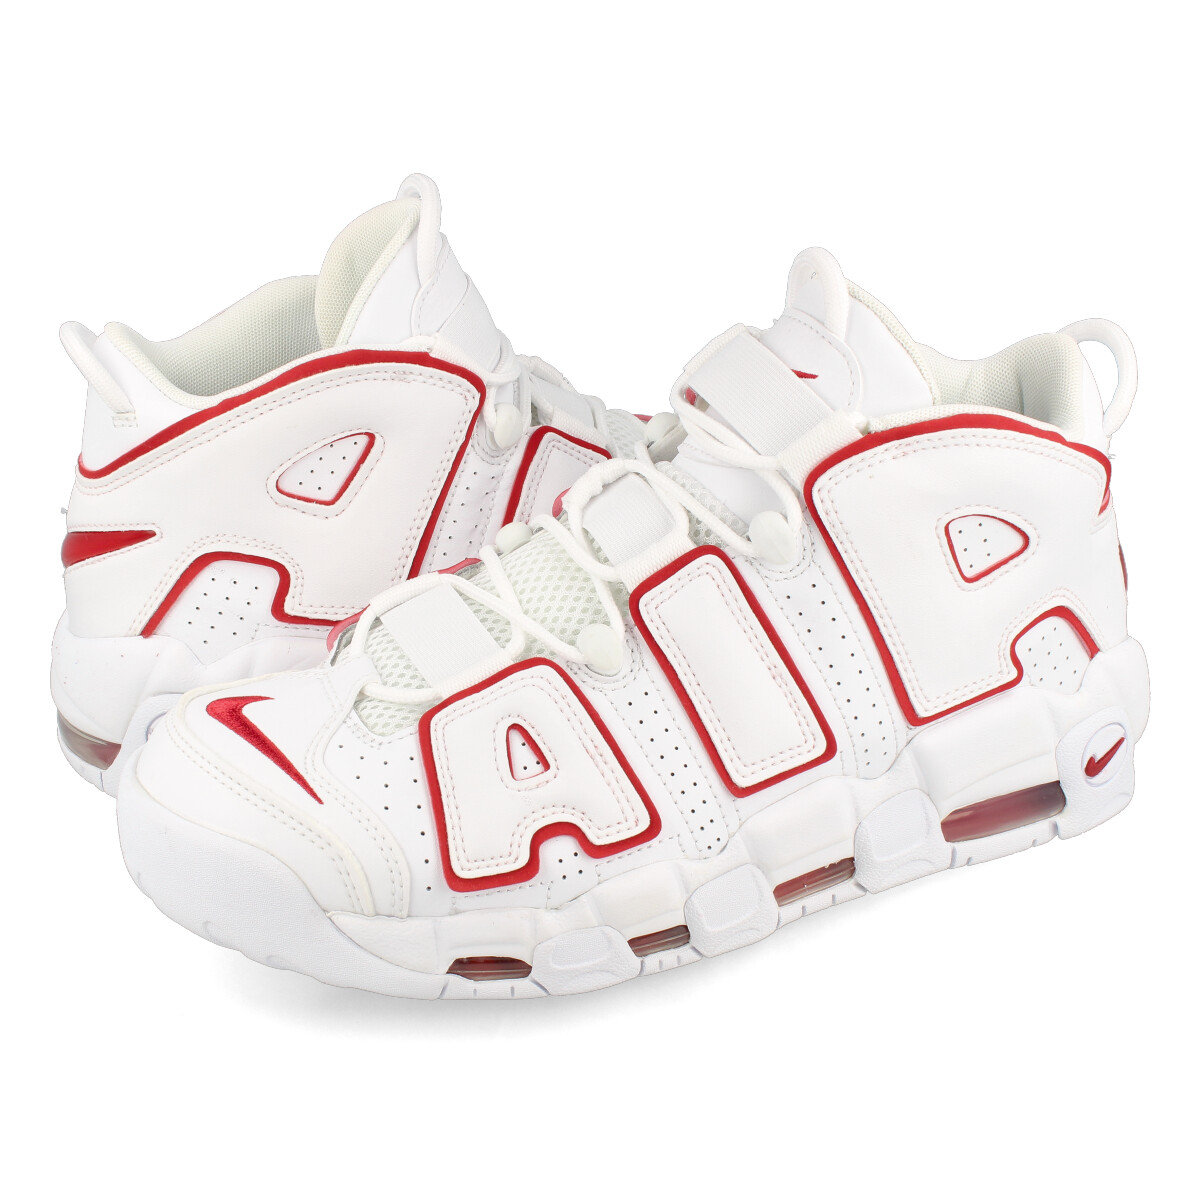 93c76ac2621b LOWTEX BIG-SMALL SHOP  NIKE AIR MORE UPTEMPO 96 Nike more up tempo ...